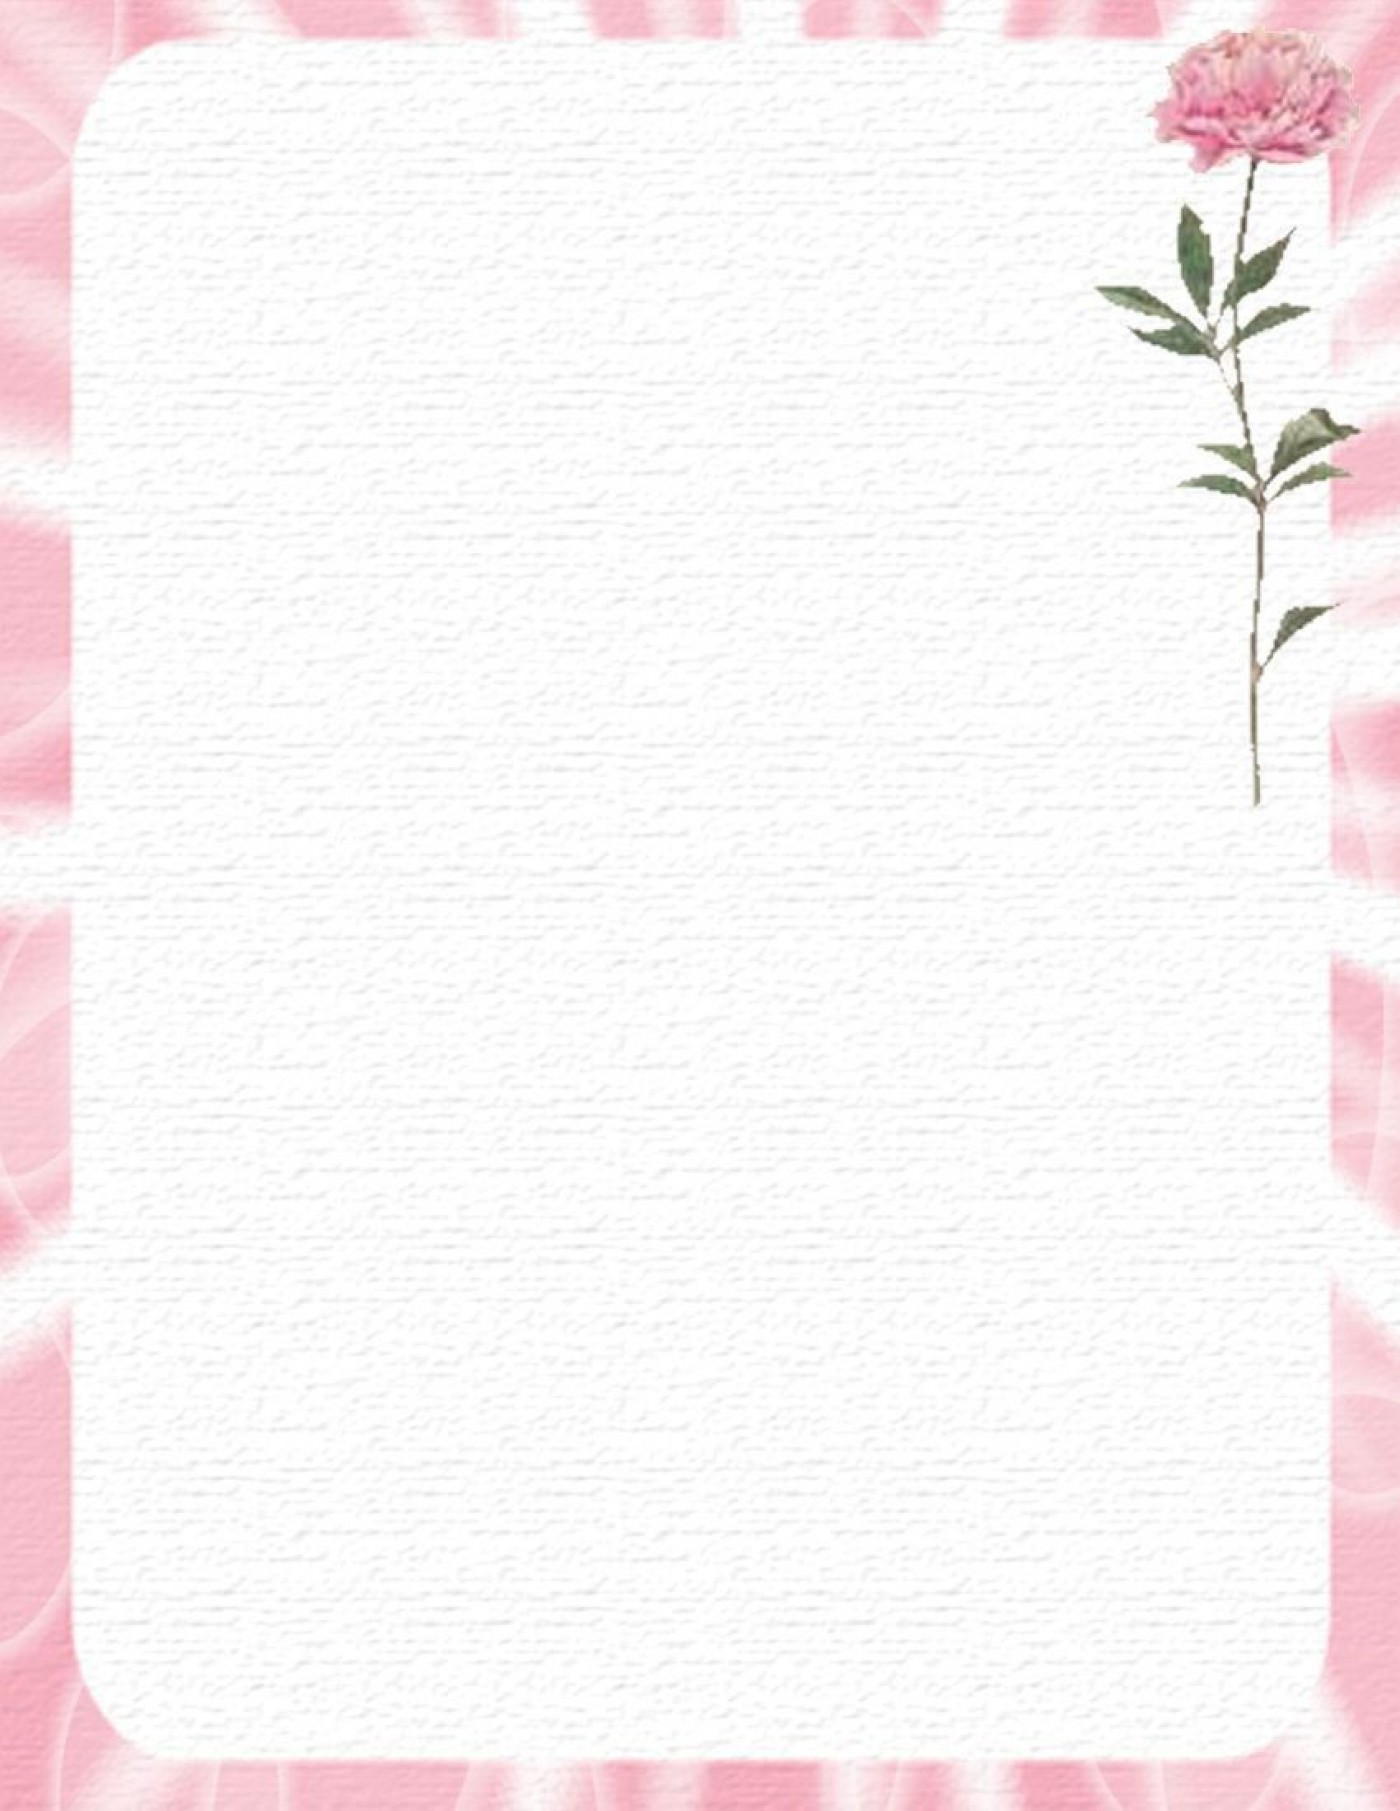 005 Outstanding Free Printable Stationery Paper Template High Def 1400